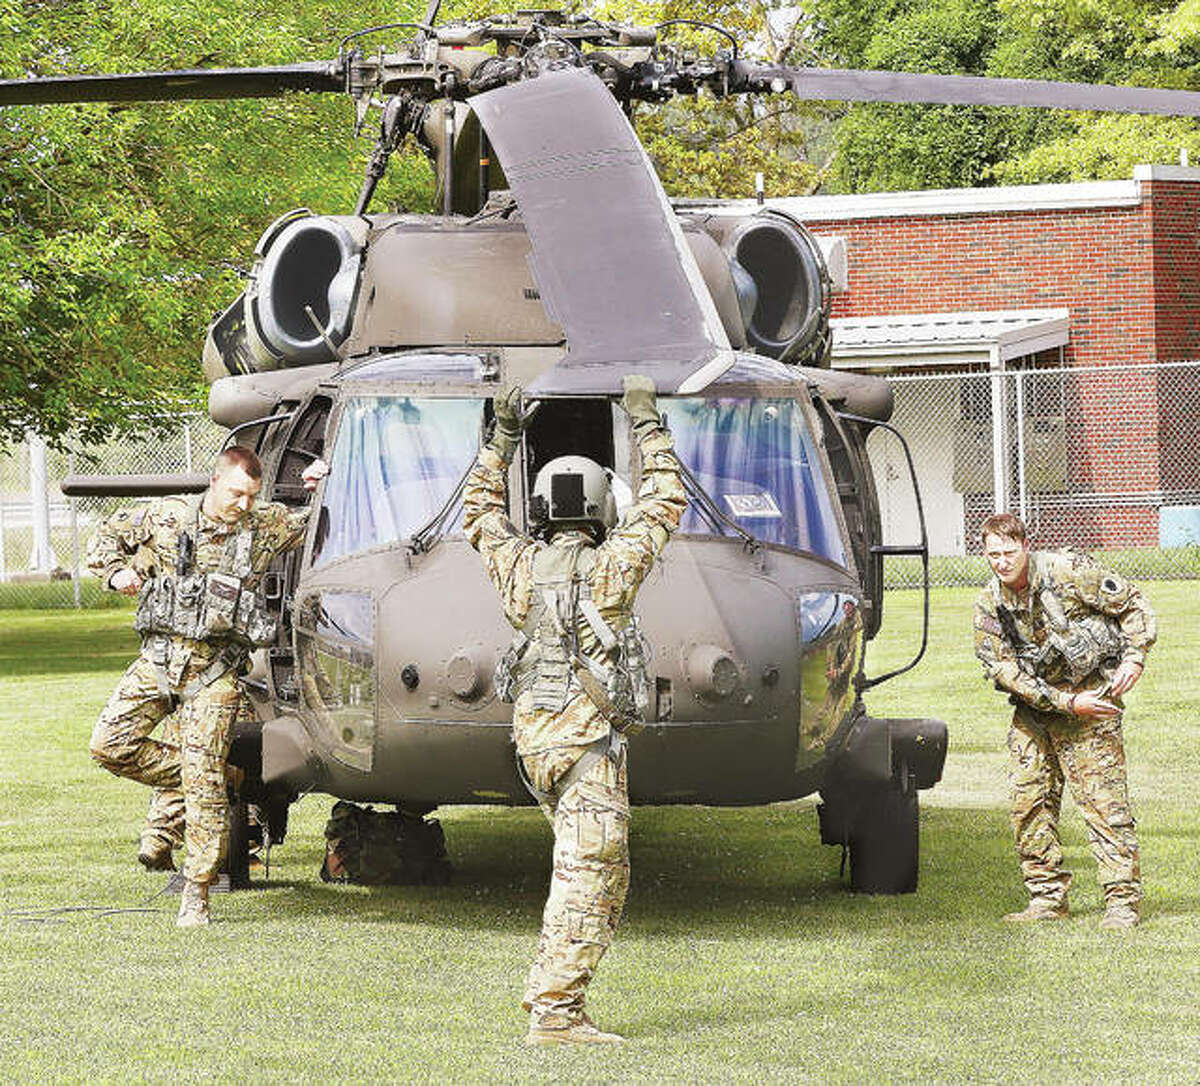 A National Guard member grabs a slowly spinning prop and stops it after the helicopter landed on the lawn behind the school.